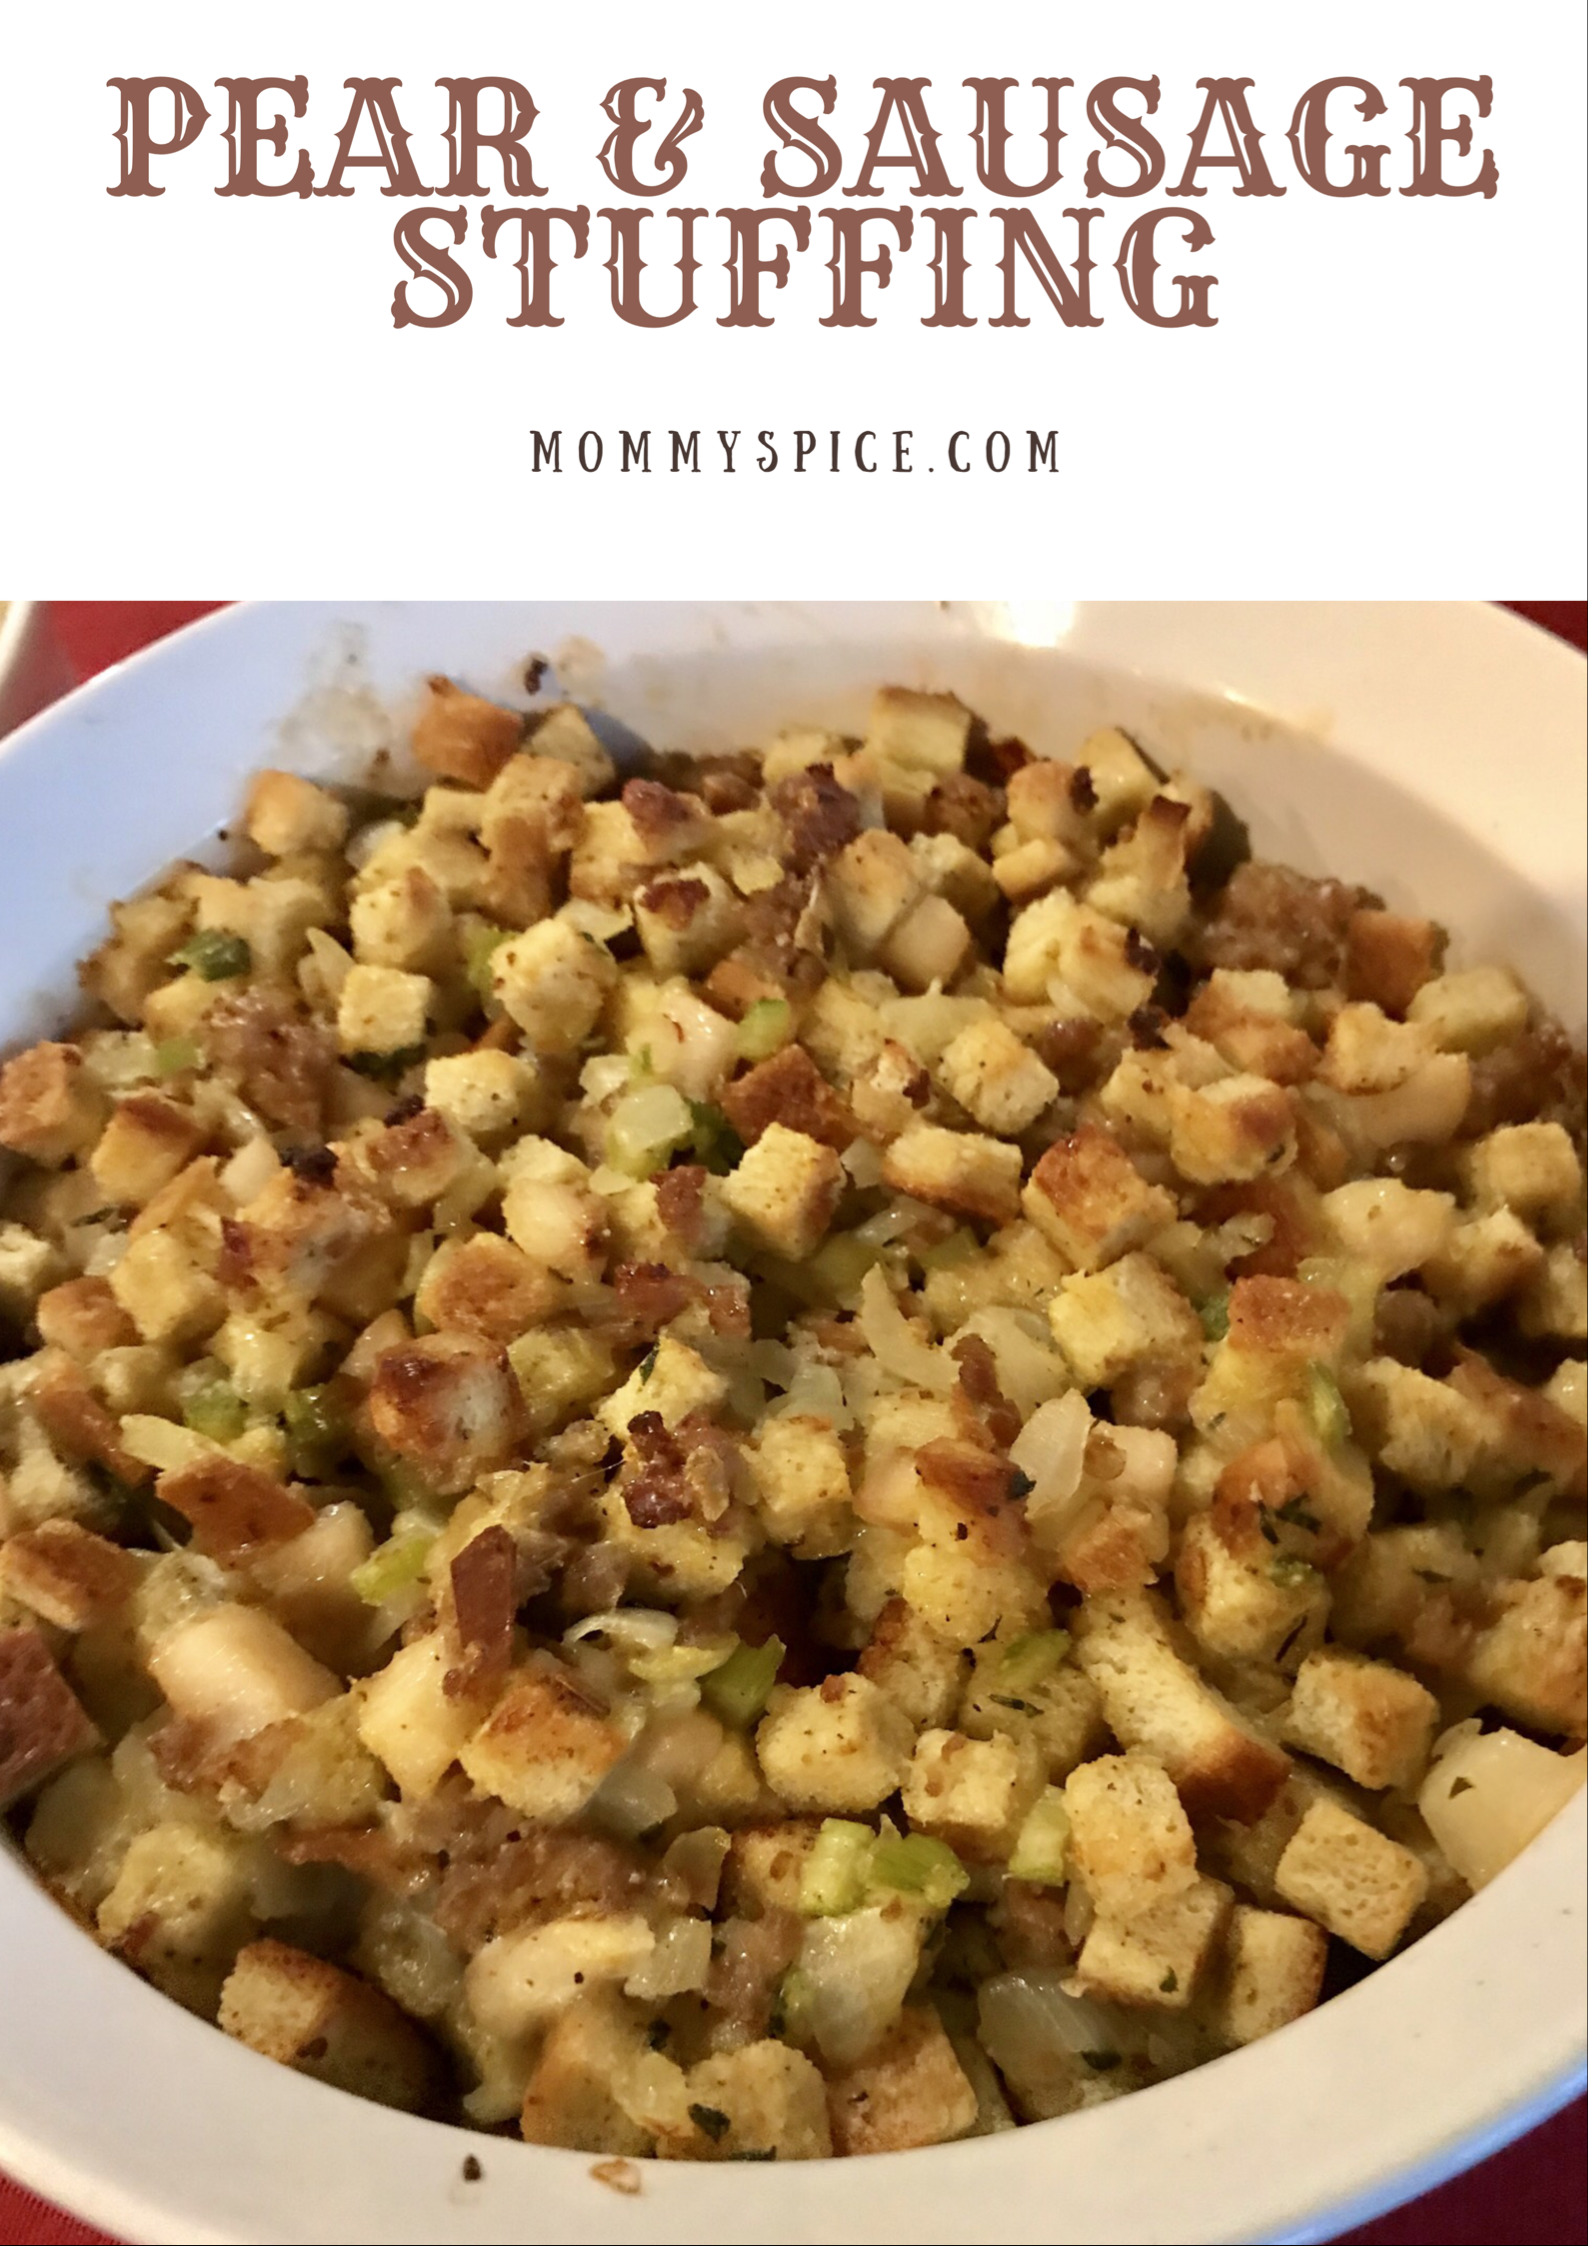 Pear & Sausage Stuffing